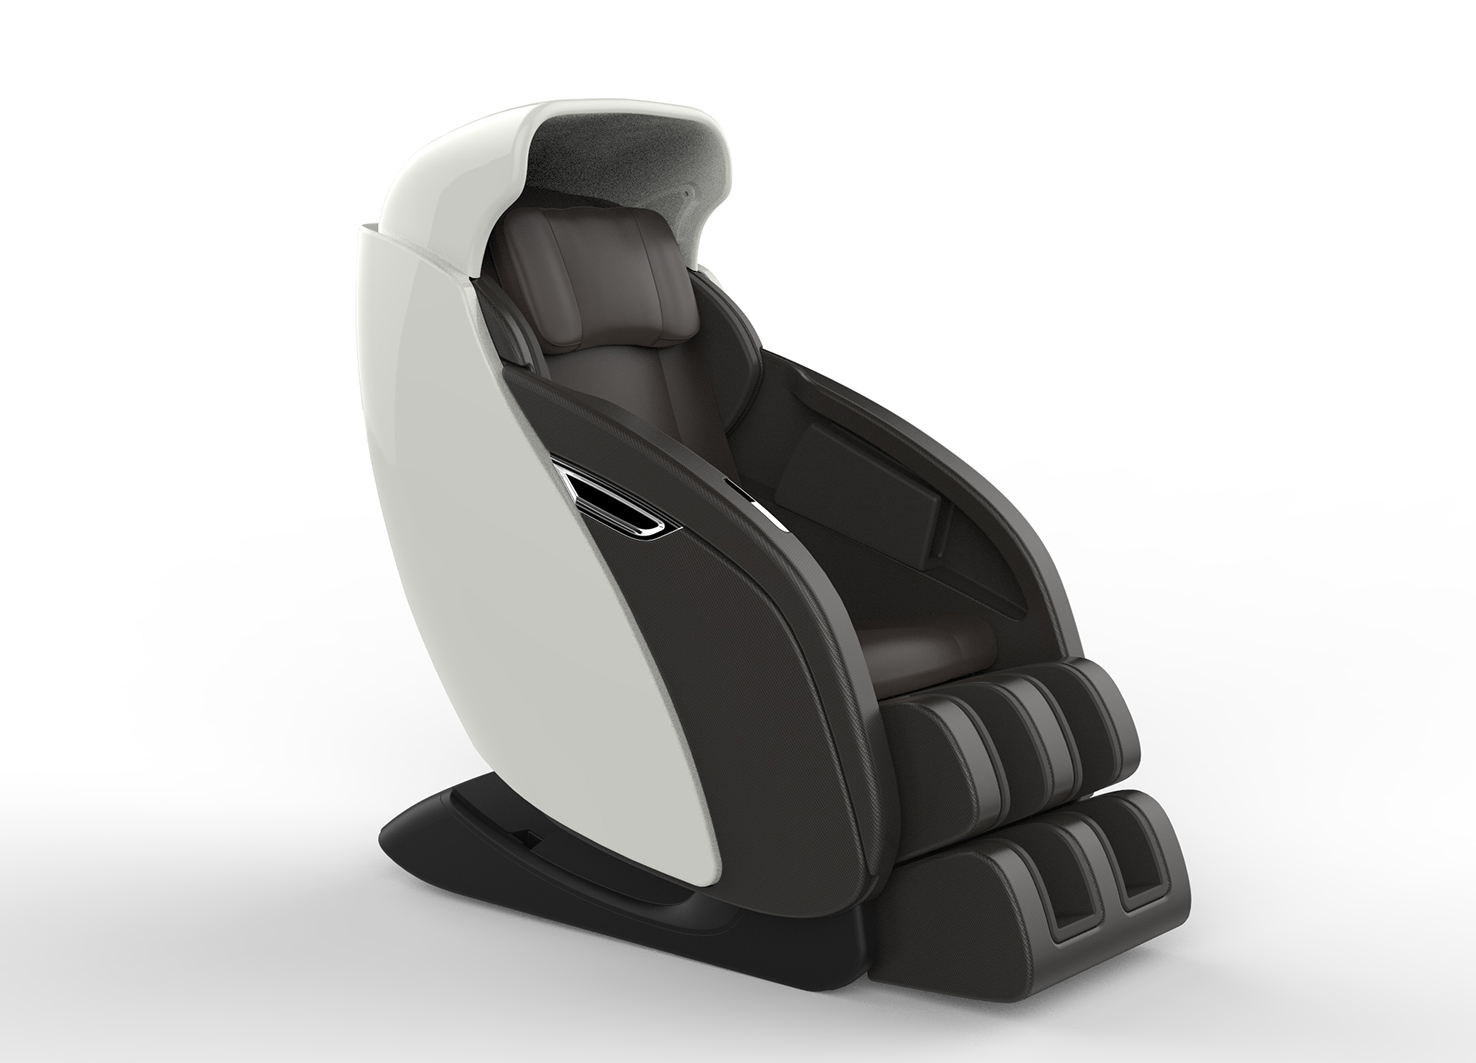 KDESIGN AWARD New massage chair design